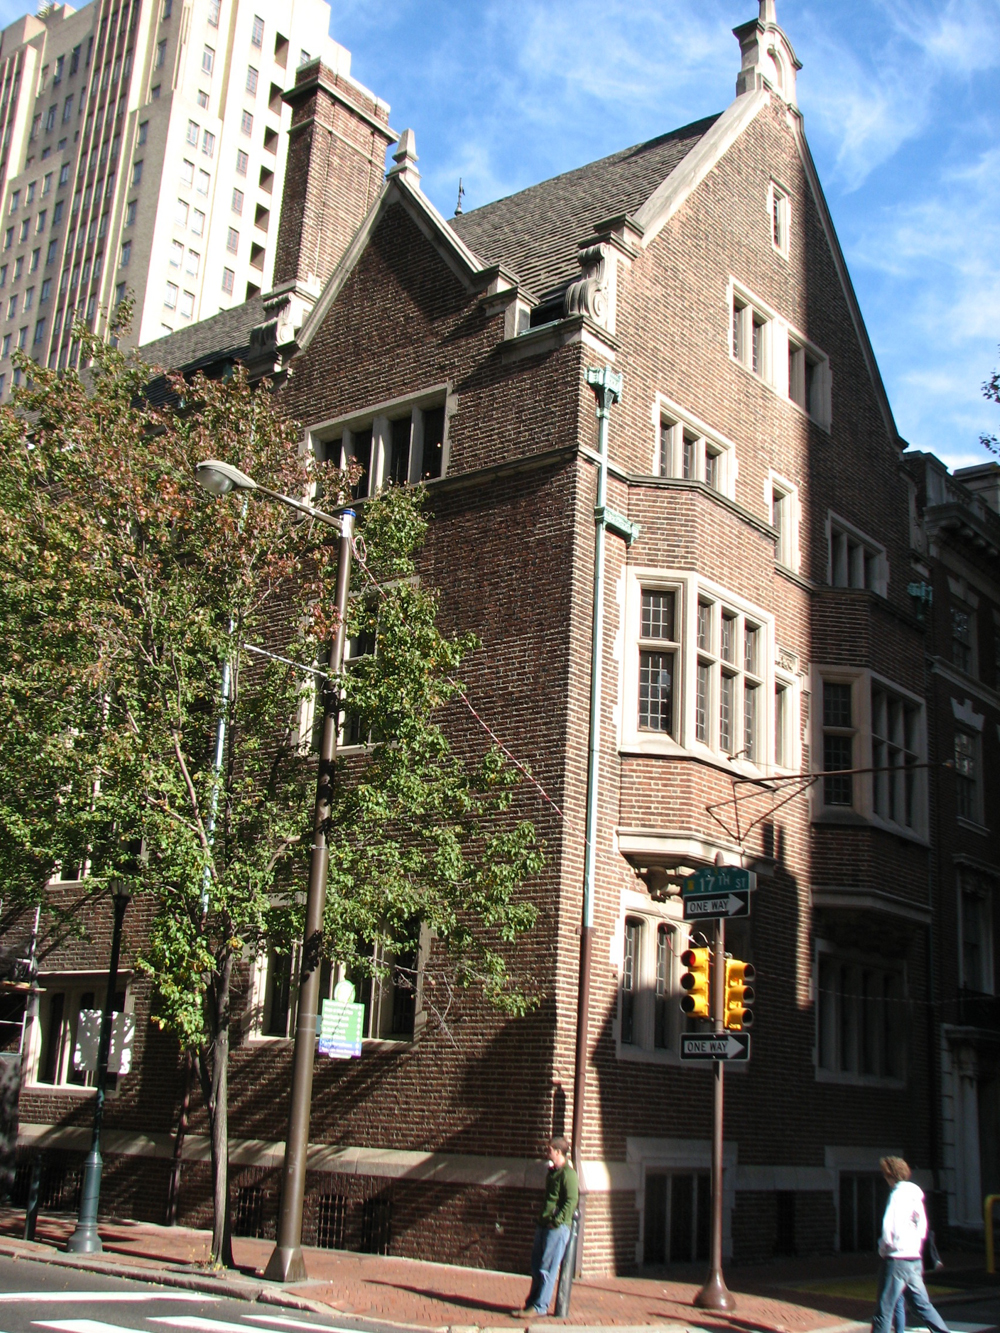 The medieval style mansion at 17th and Locust was designed by Frank Miles Day.